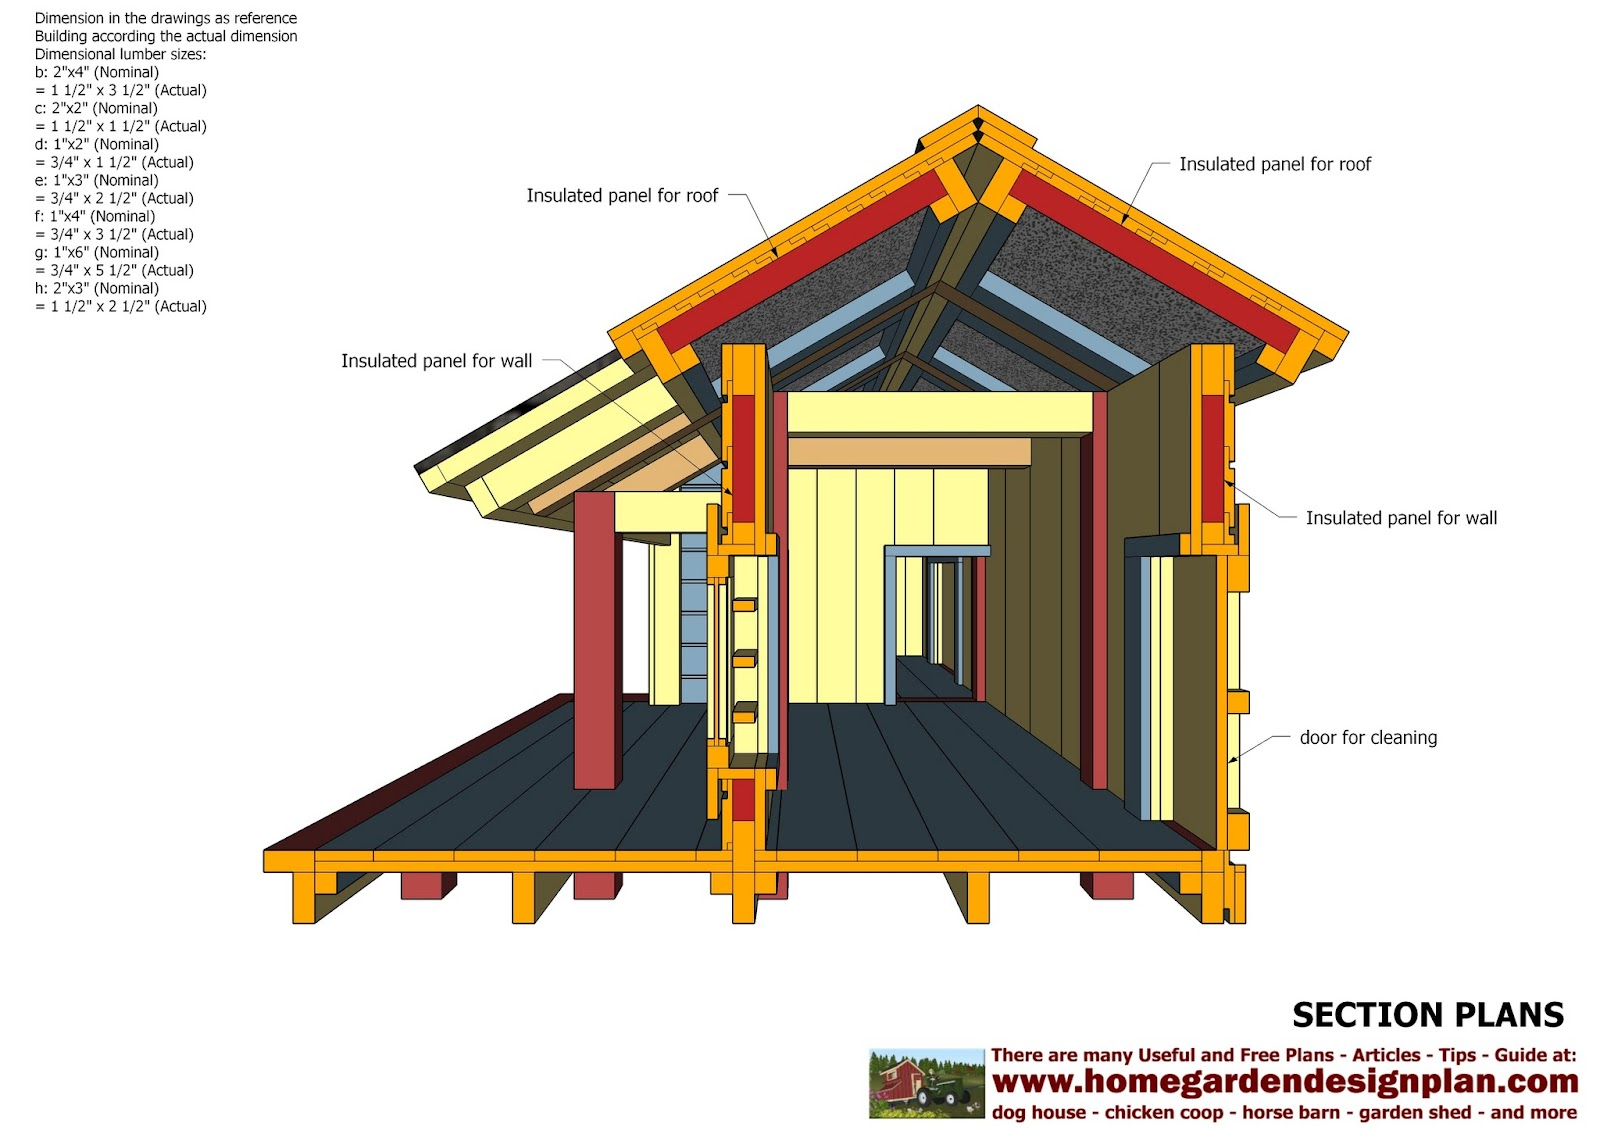 home garden plans dh303 dog house plans dog house design insulated dog house